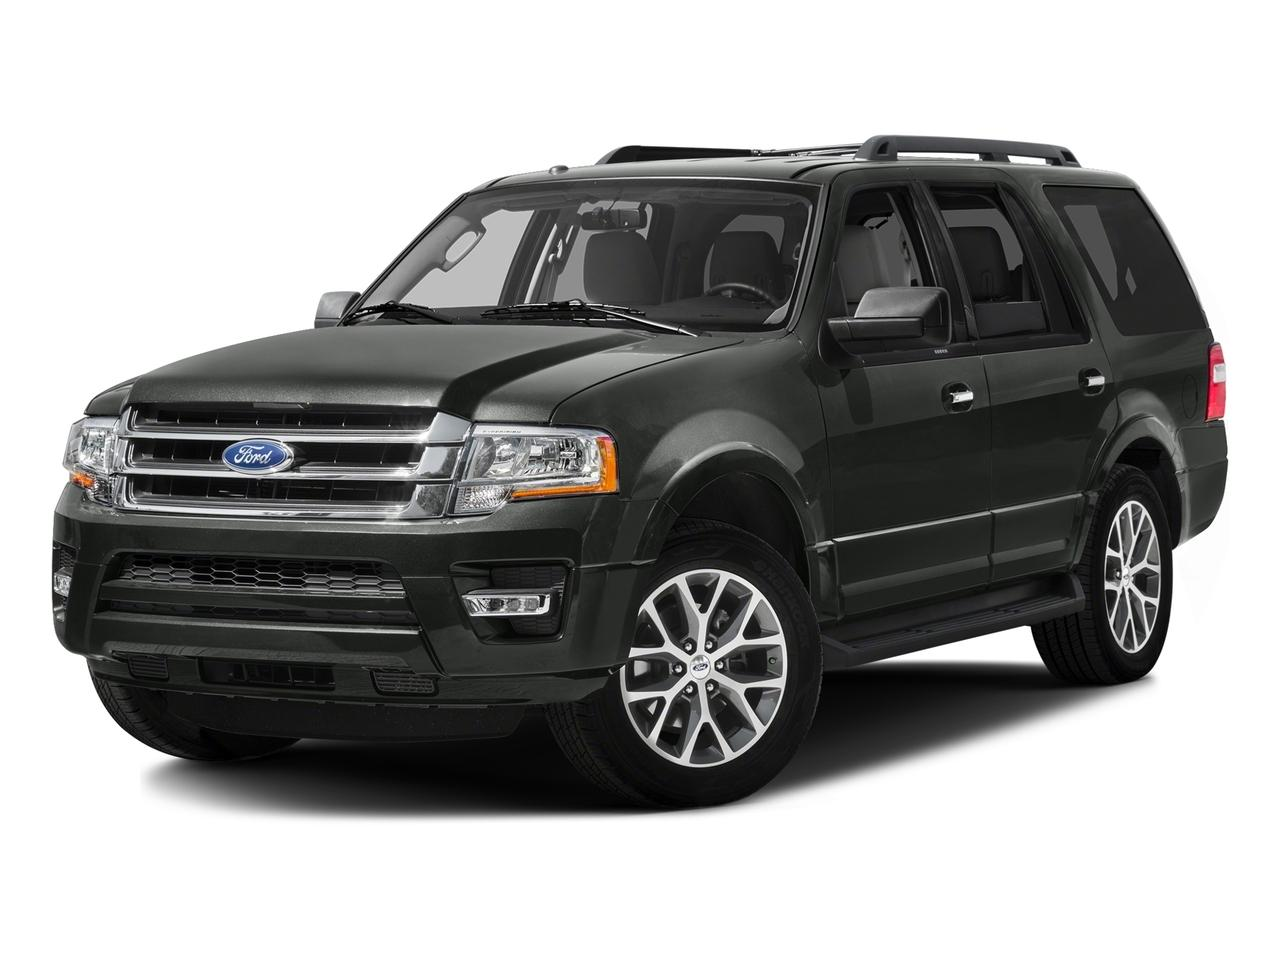 2016 Ford Expedition Vehicle Photo in Colorado Springs, CO 80920